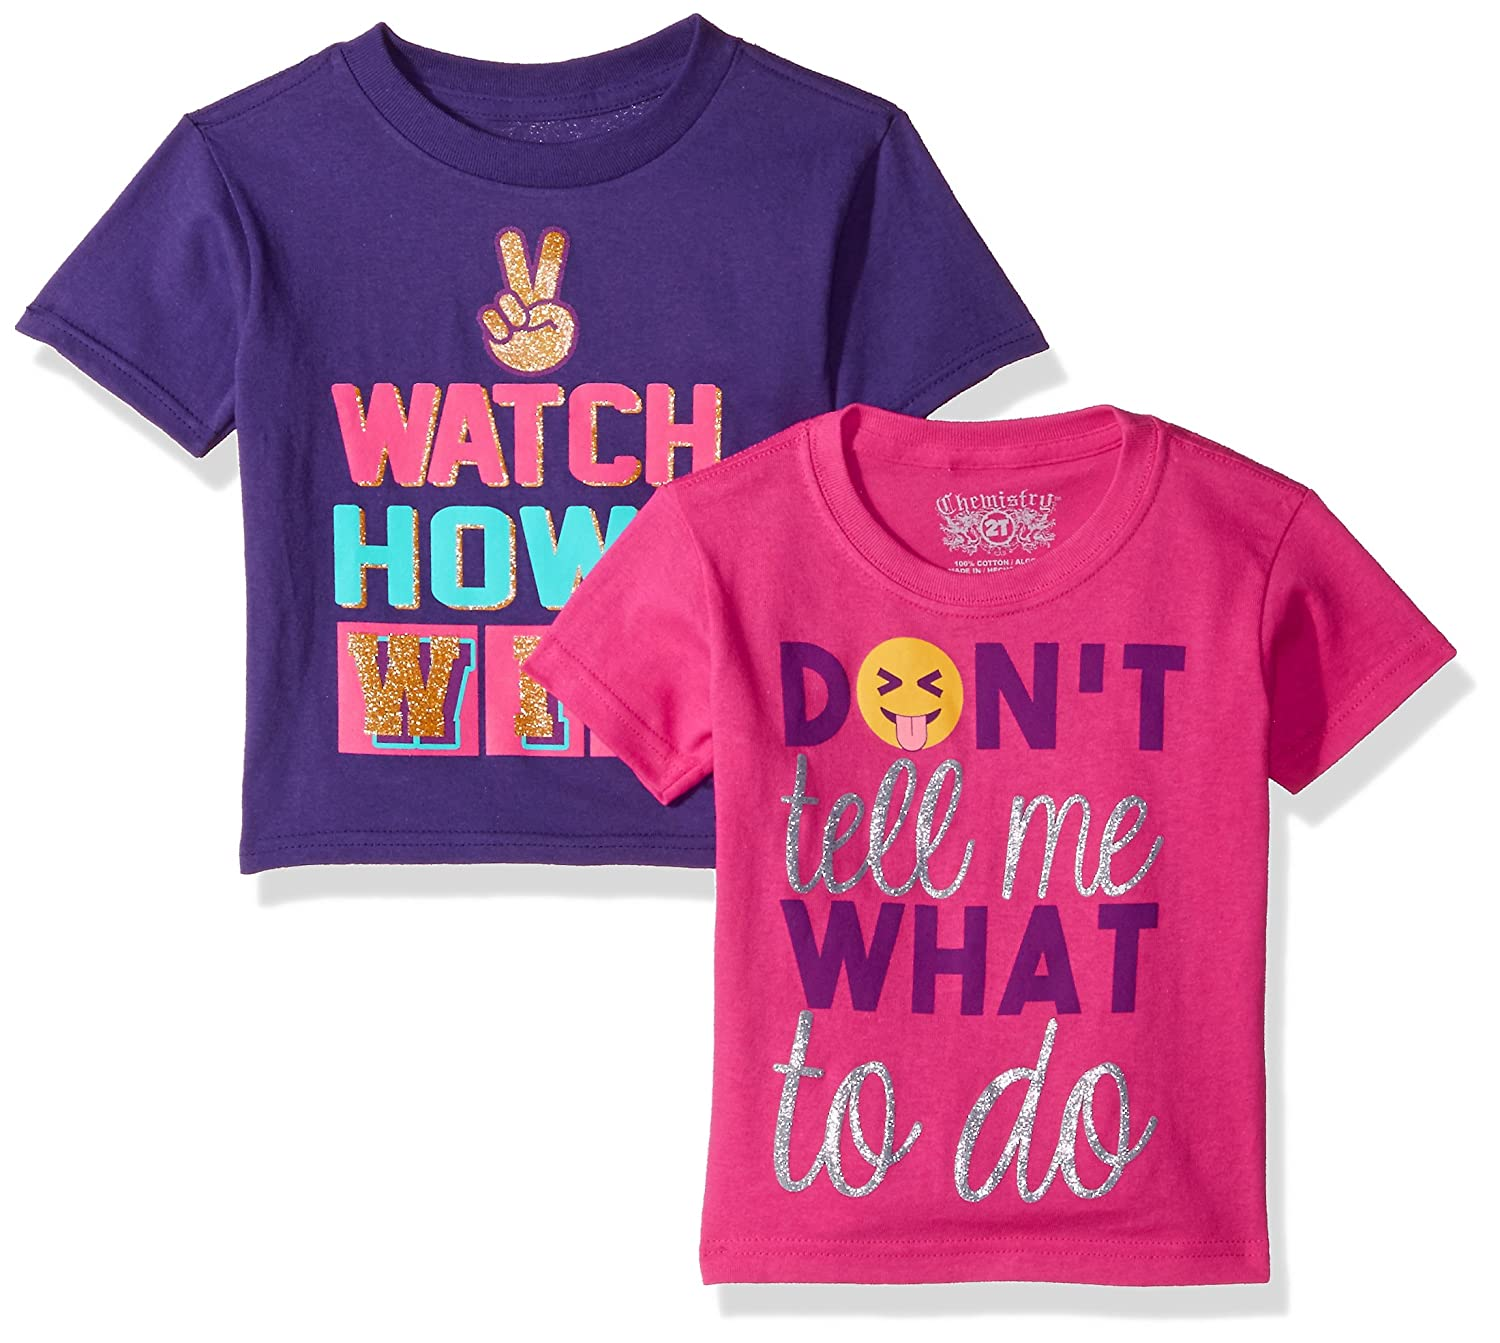 a22127a7564 Bestag Embroidery Teen Girls Rose Crop Top Slim Tees Short Sleeve T-Shirt.  $5.91. C-Life Girls' Toddler Chemistry 2-Pack Assorted Graphic T-Shirts